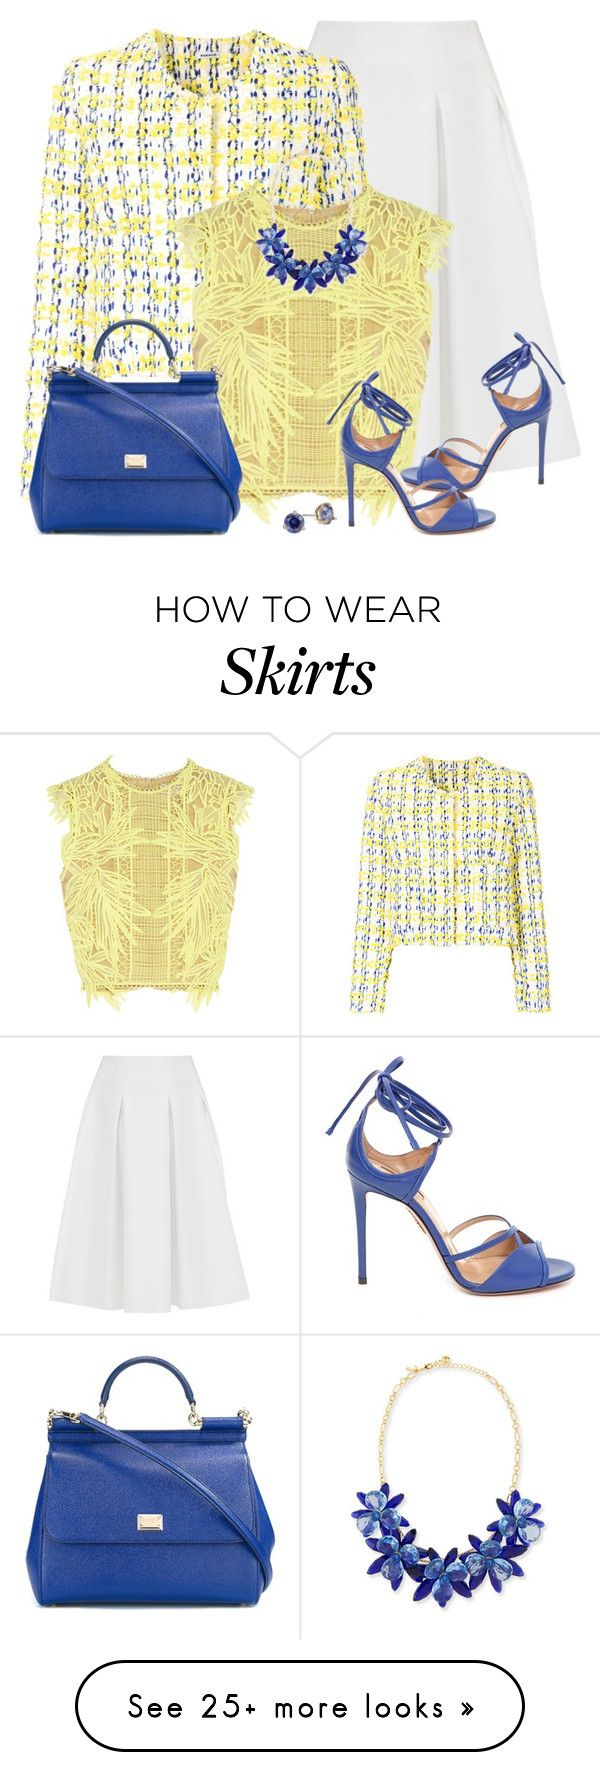 """Lady in Lemon"" by asigworth on Polyvore featuring Ted Baker, P.A.R.O.S.H., Erdem, Aquazzura, Dolce&Gabbana and Kate Spade"